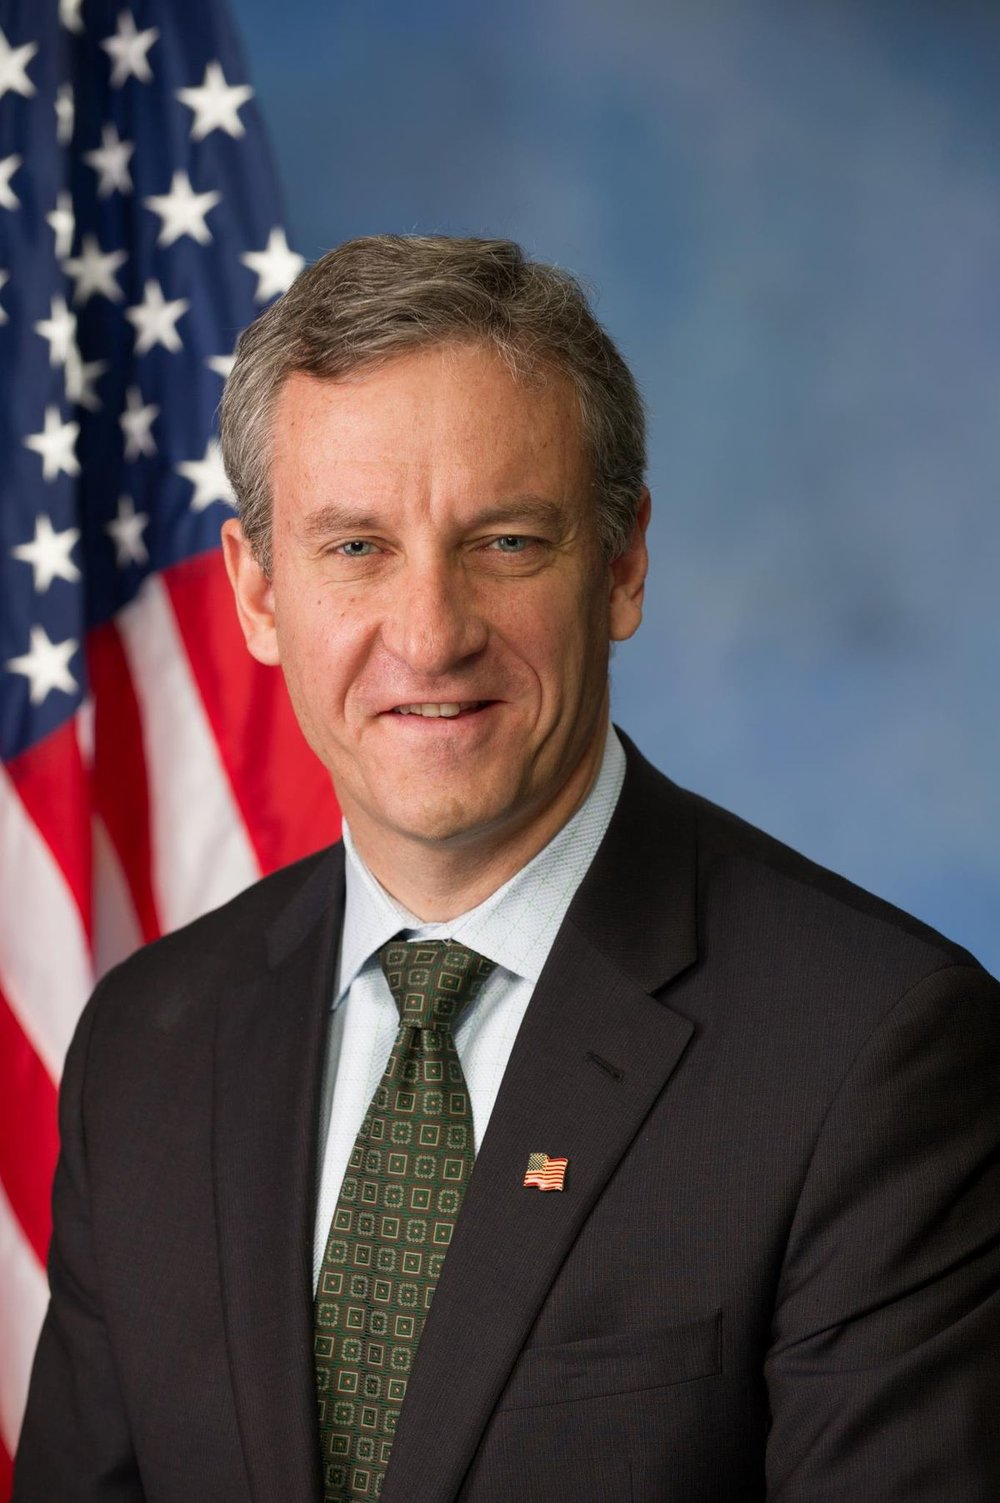 Rep. Matt Cartwright